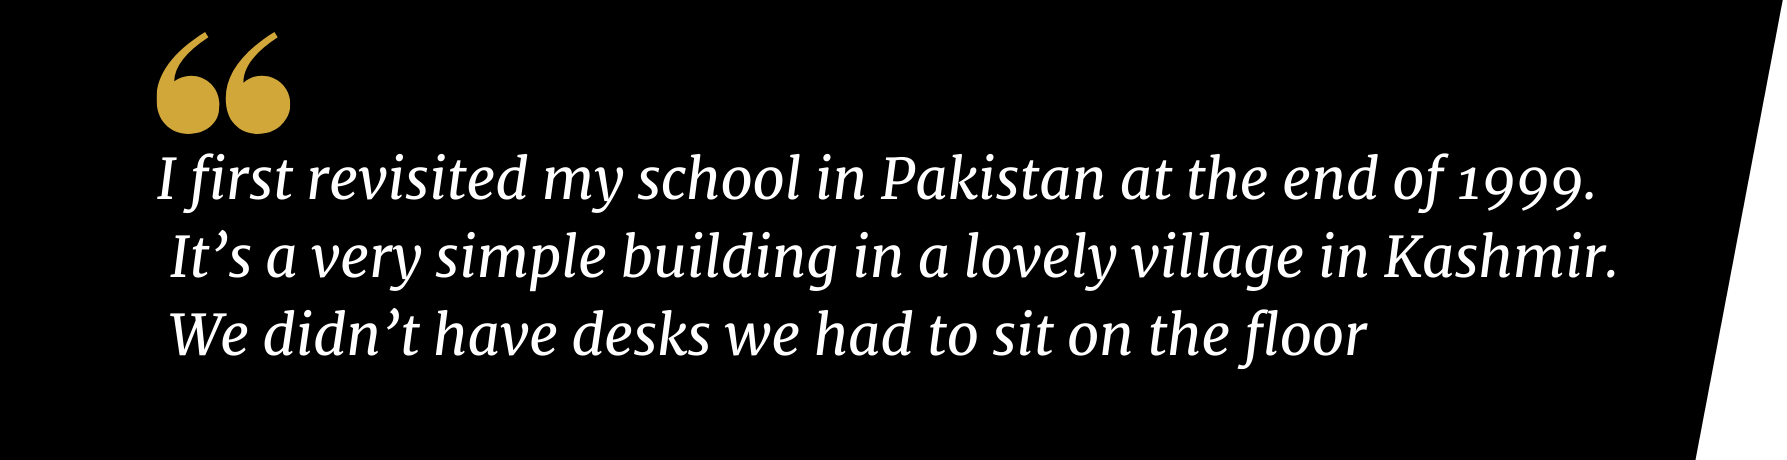 Zira Hussain, I first revisited my school in Pakistan at the end of 1999.  It's a very simple building in a lovely village in Kashmir.  We didn't have desks we had to sit on the floor